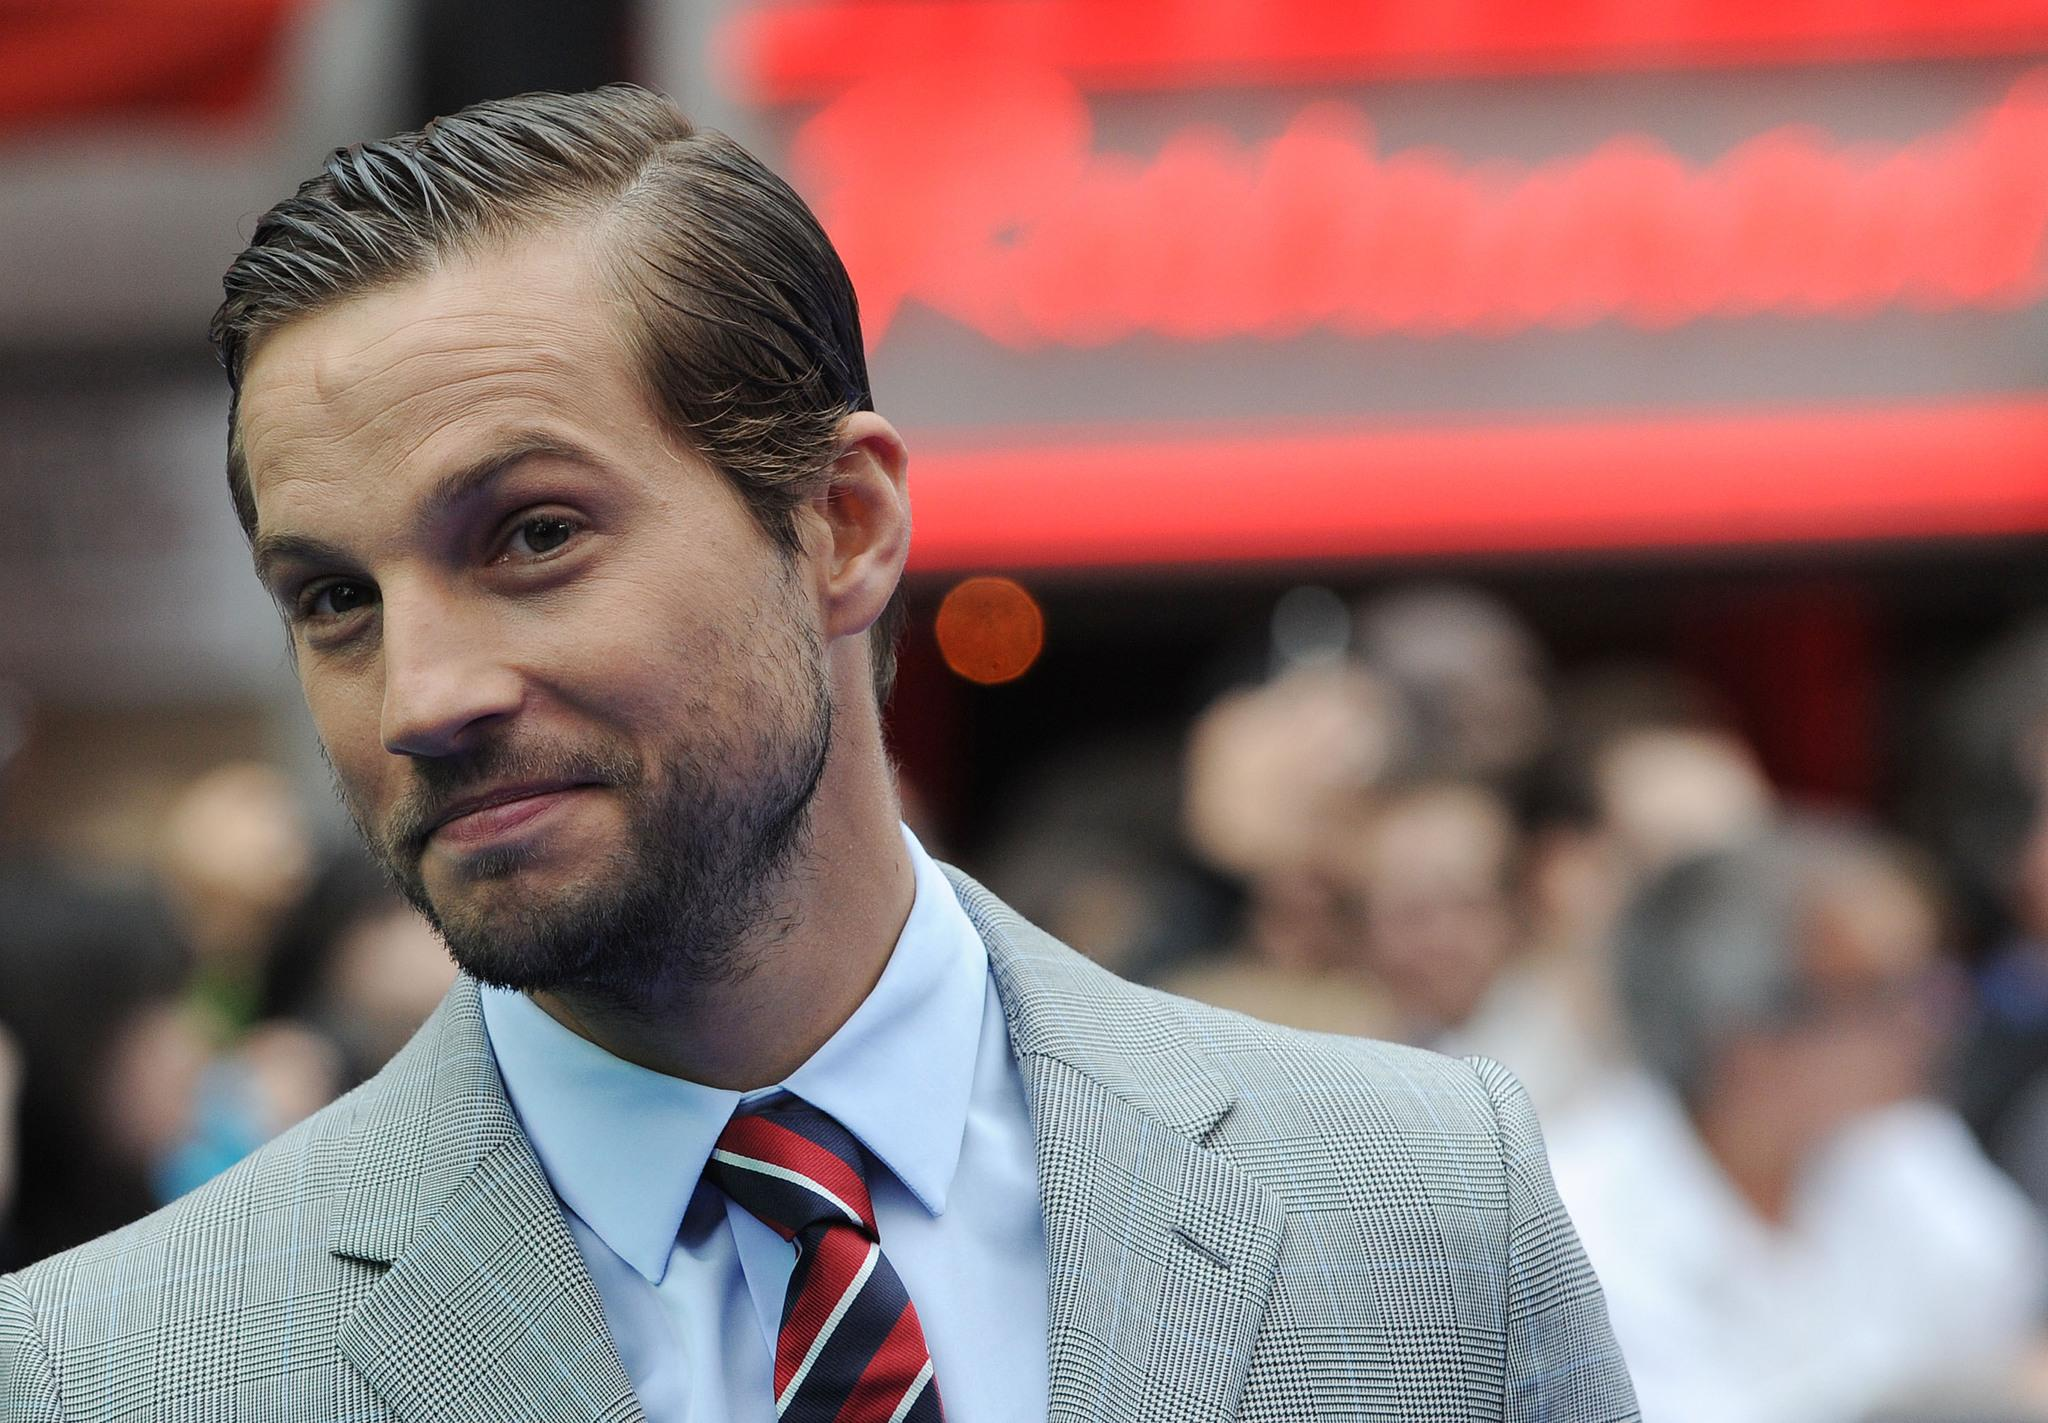 Logan Marshall-Green integra o elenco como Jackson Brice